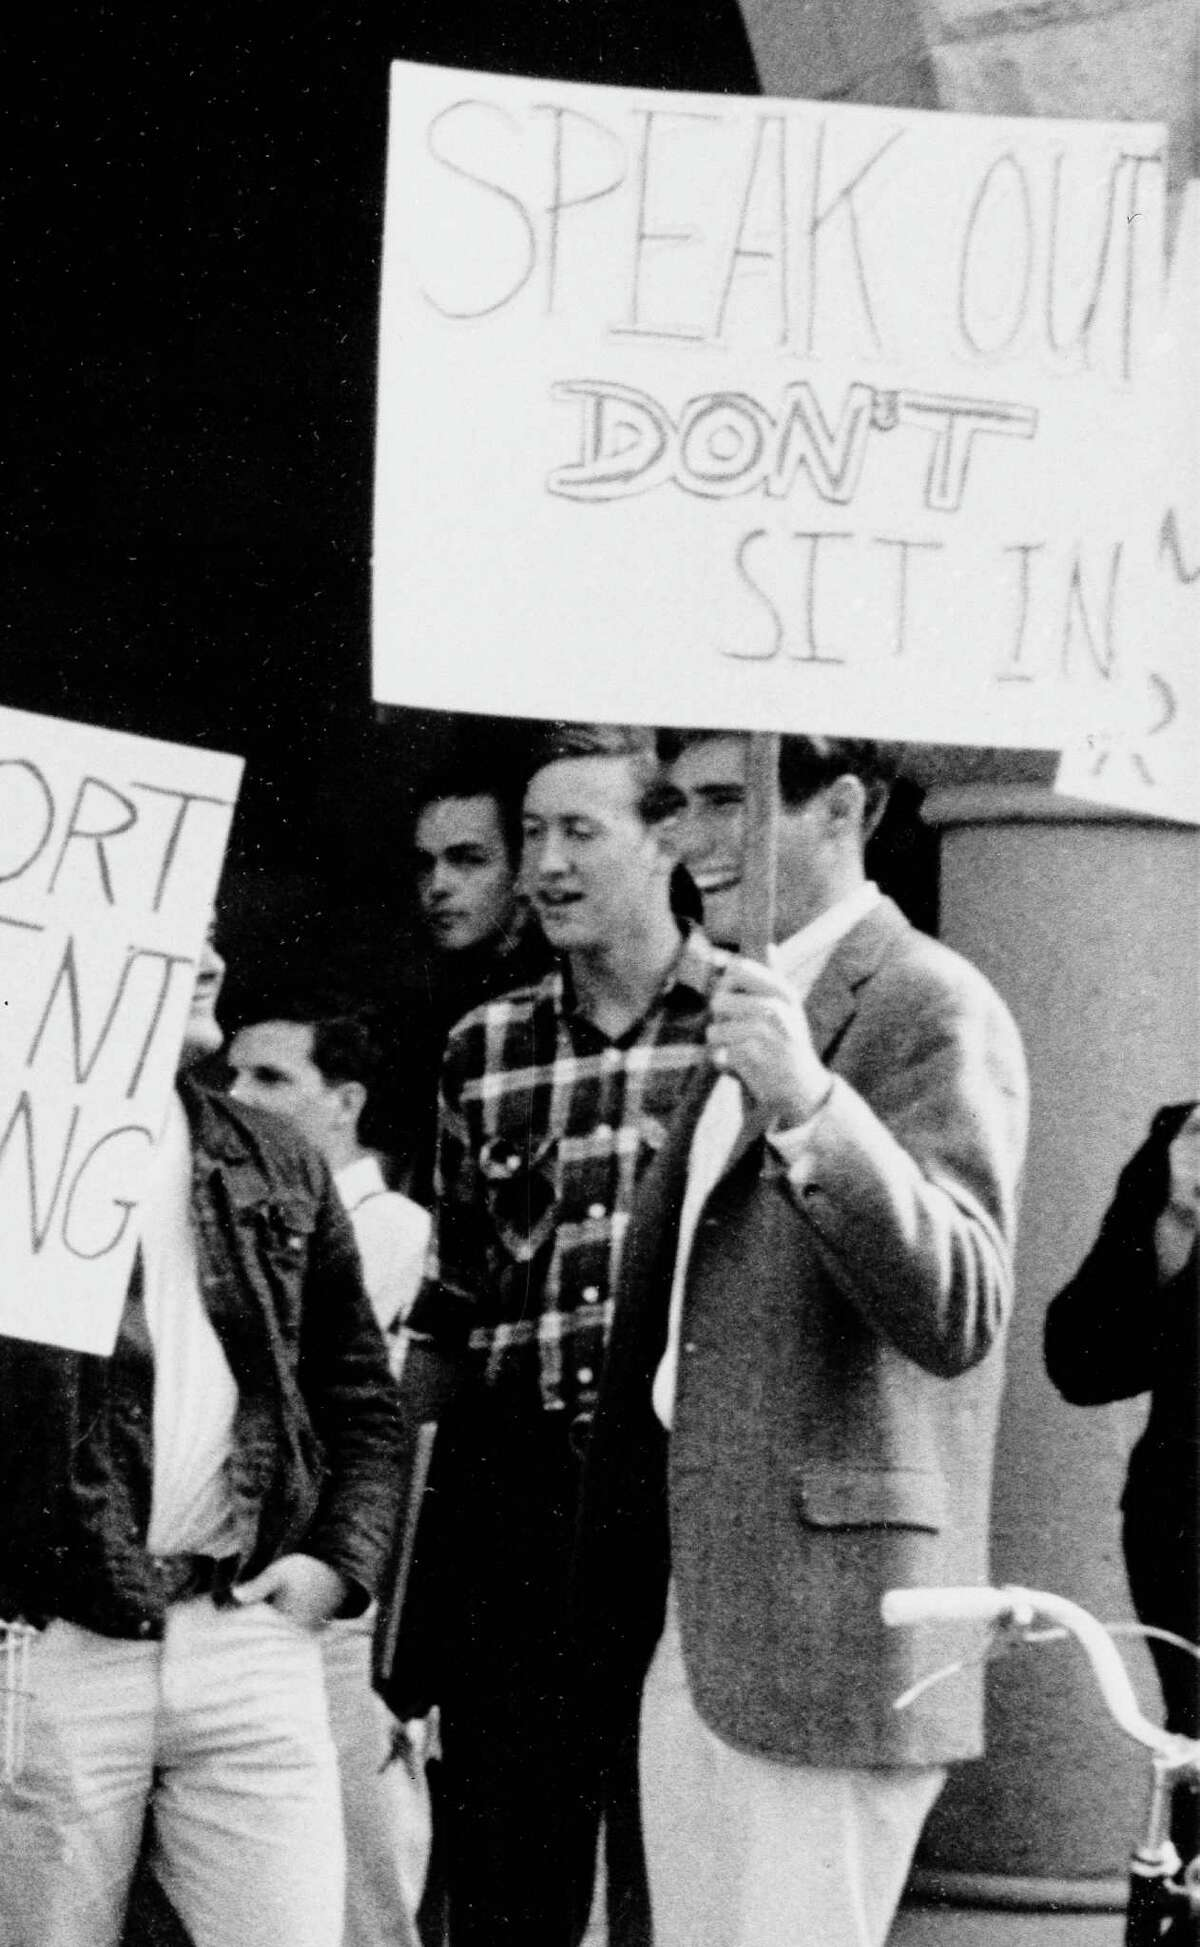 In this 1966 photo taken by a photographer at the San Francisco Examiner newspaper, 19-year-old Mitt Romney, right, then a student at Stanford University, participates in a counter-protest on campus. Romney and his fellow students were reacting to a protest then being waged by other students upset with the university's student draft deferment policies. Romney sought and received four draft deferments from 1965 to 1970 during college and his time as a Mormon missionary in France. The country was cutting troop levels by the time he became eligible for service, and his draft number was not called. (AP Photo/San Francisco Examiner)